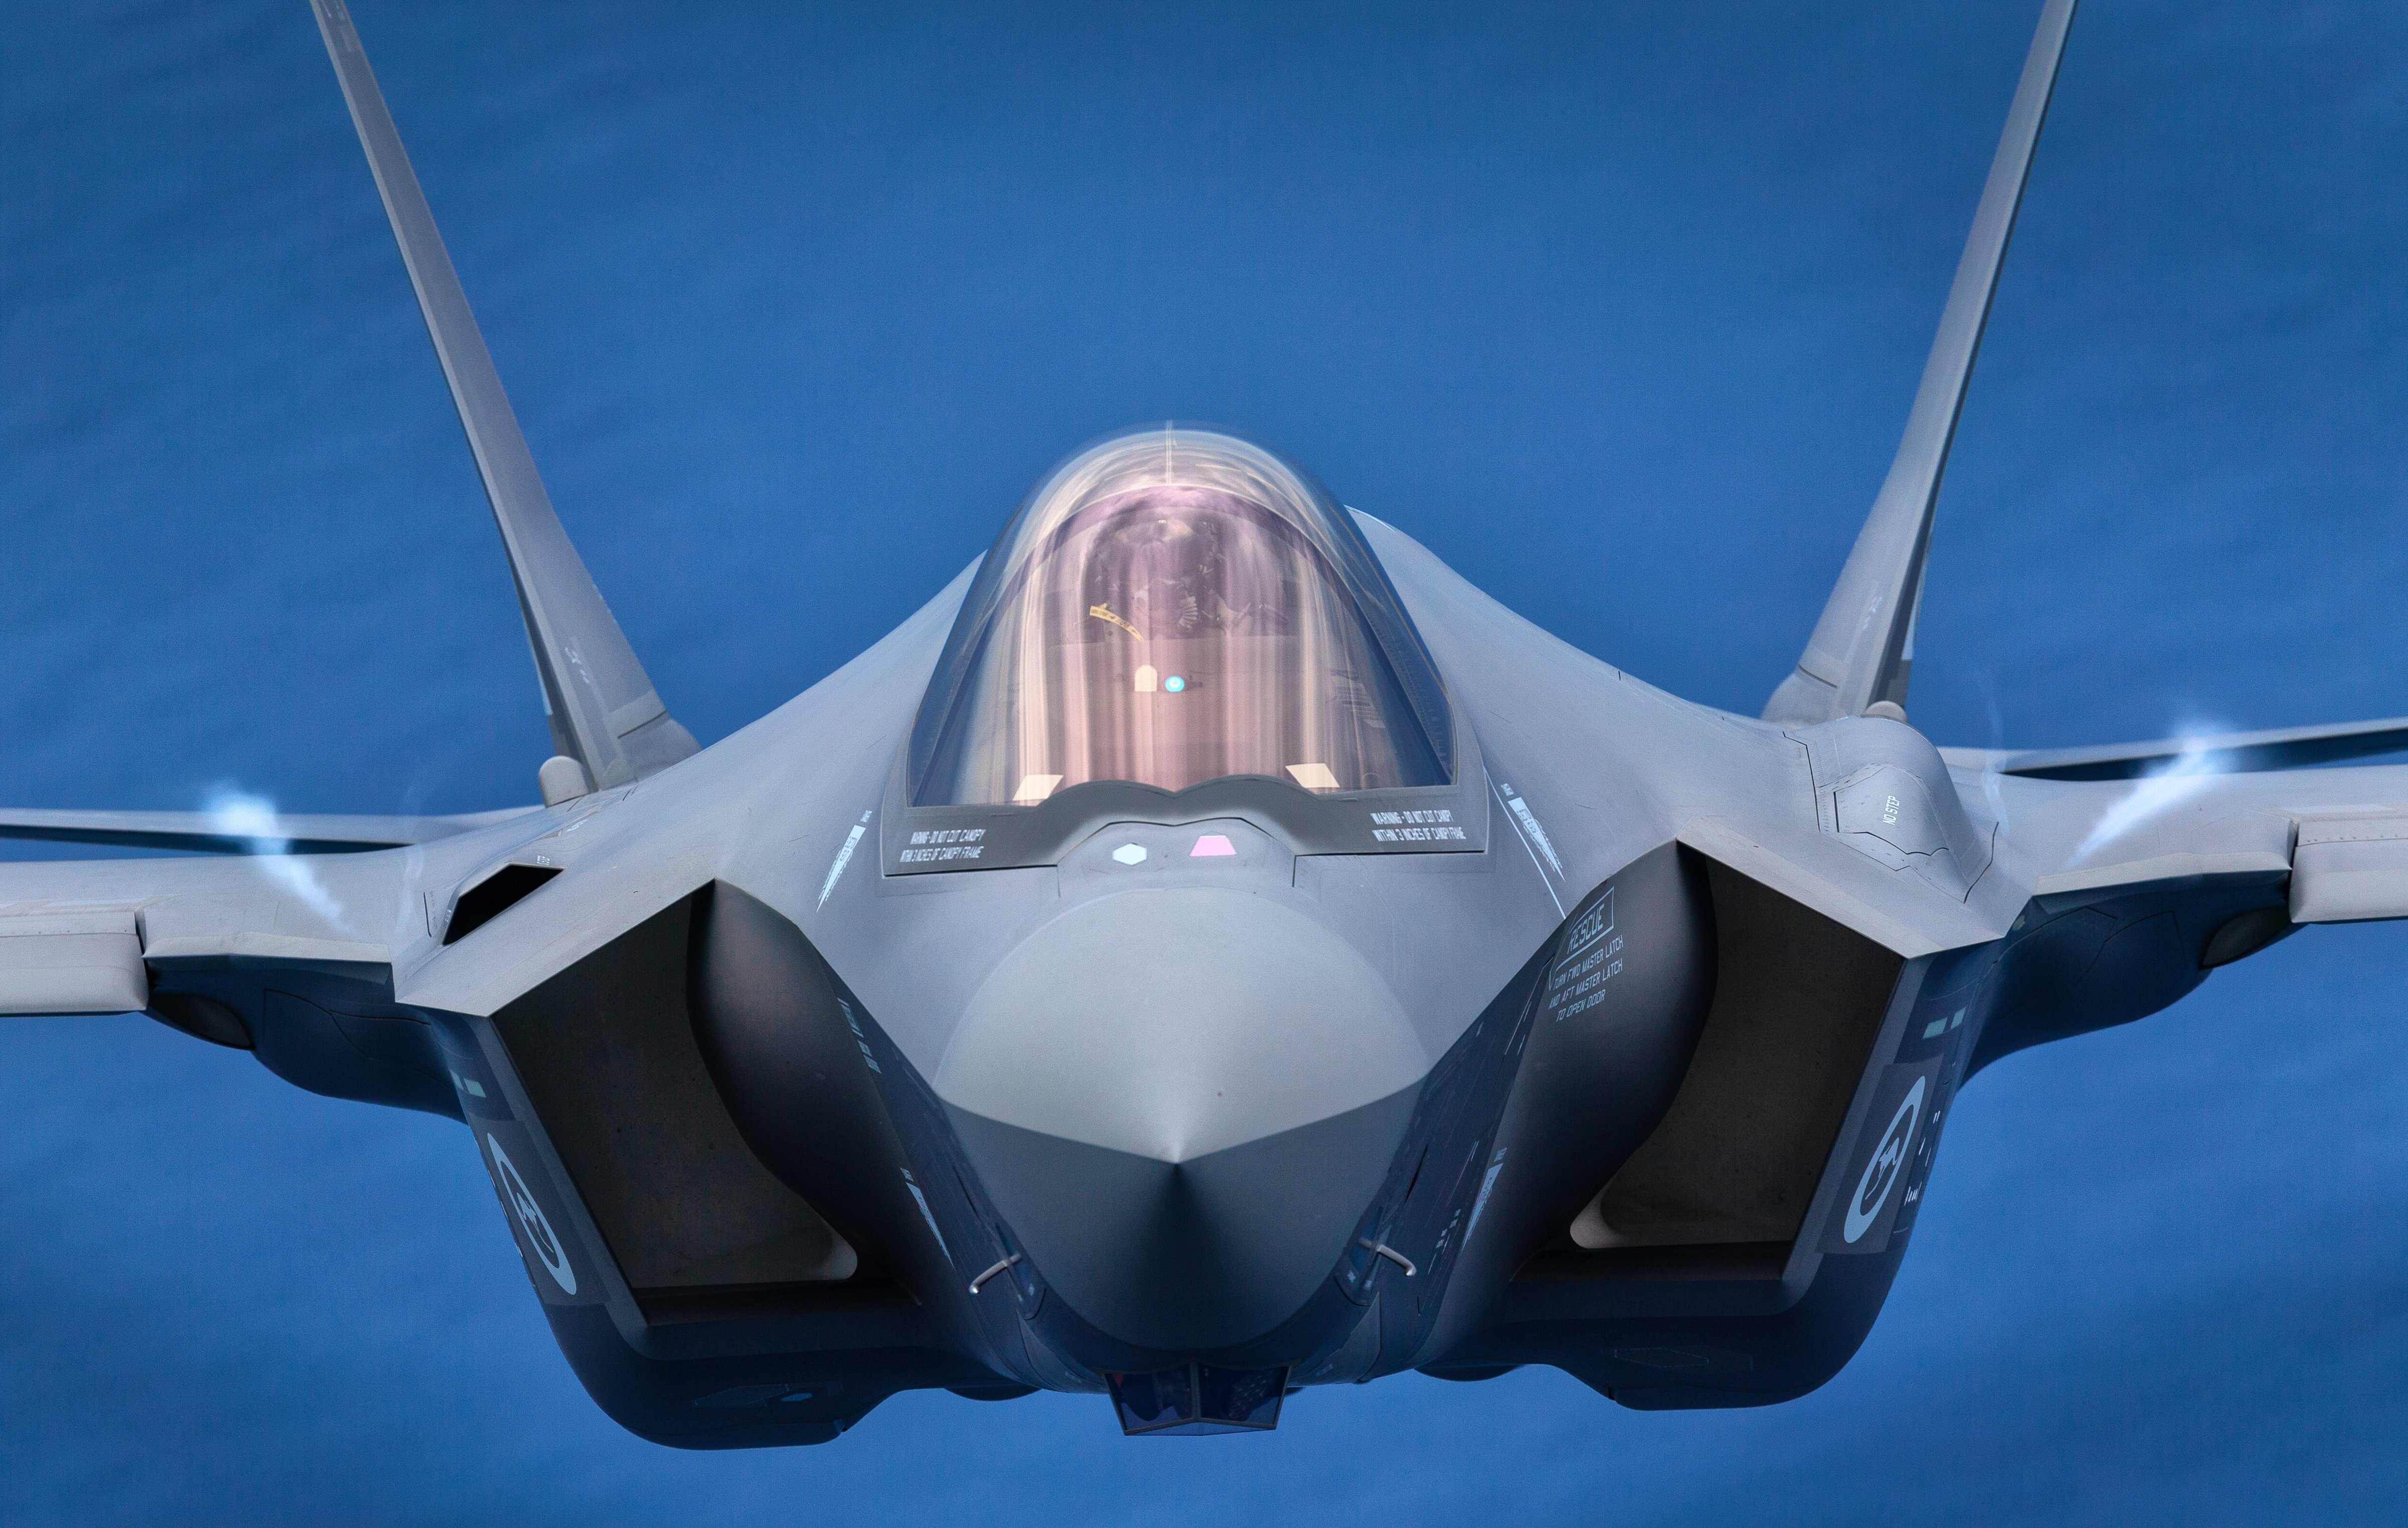 RAAF F-35A [Commonwealth of Australia - Department of Defence/Cpl David Said]